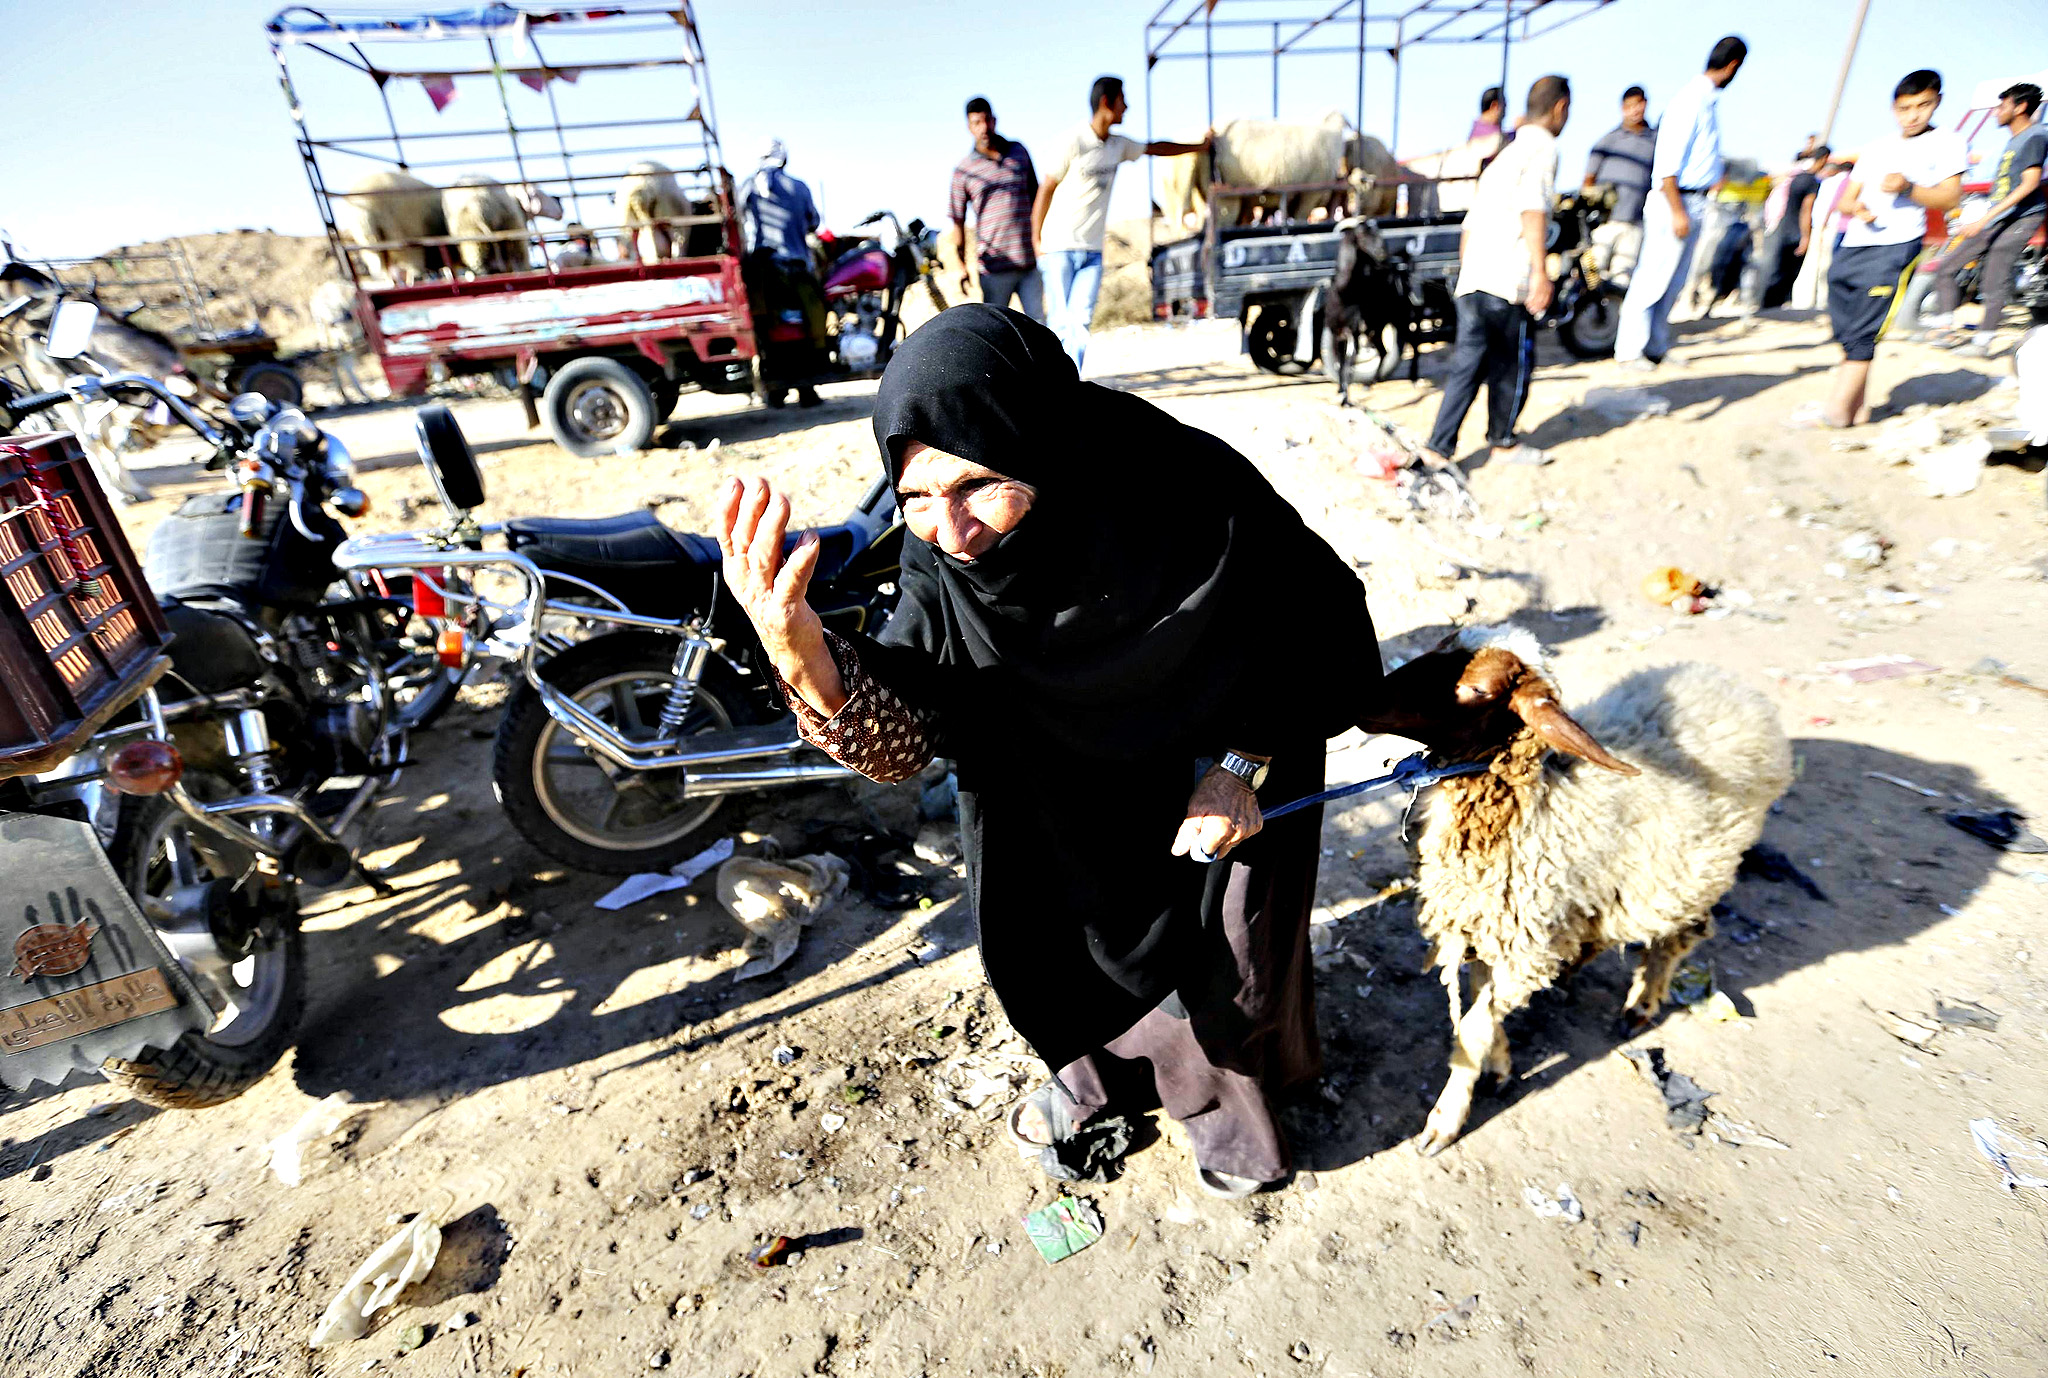 A Palestinian vendor gestures as she displays sheep for customers at a livestock market ahead of Eid-al-Adha in Khan Younis in the southern Gaza Strip September 30, 2014.